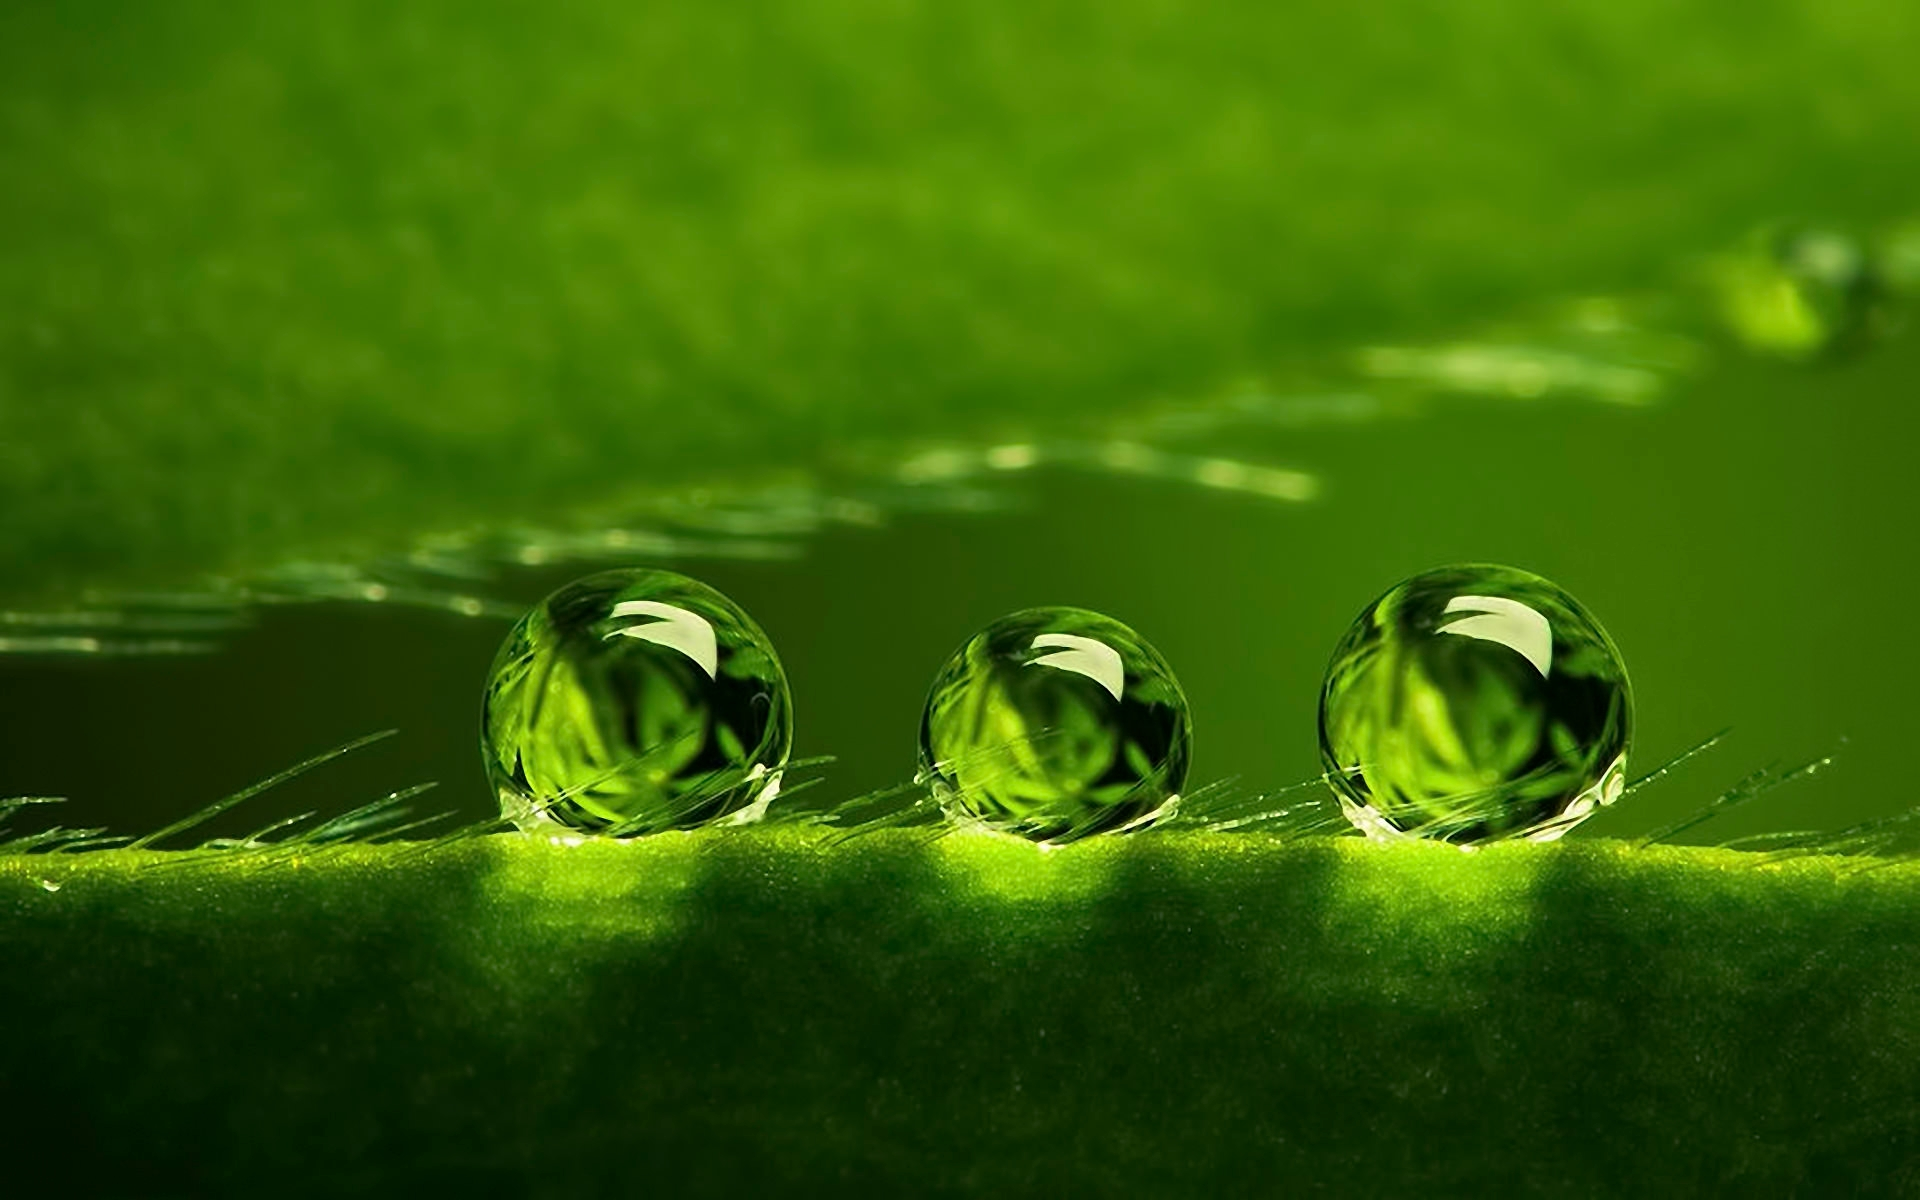 Green Bubbles HD Wallpaper